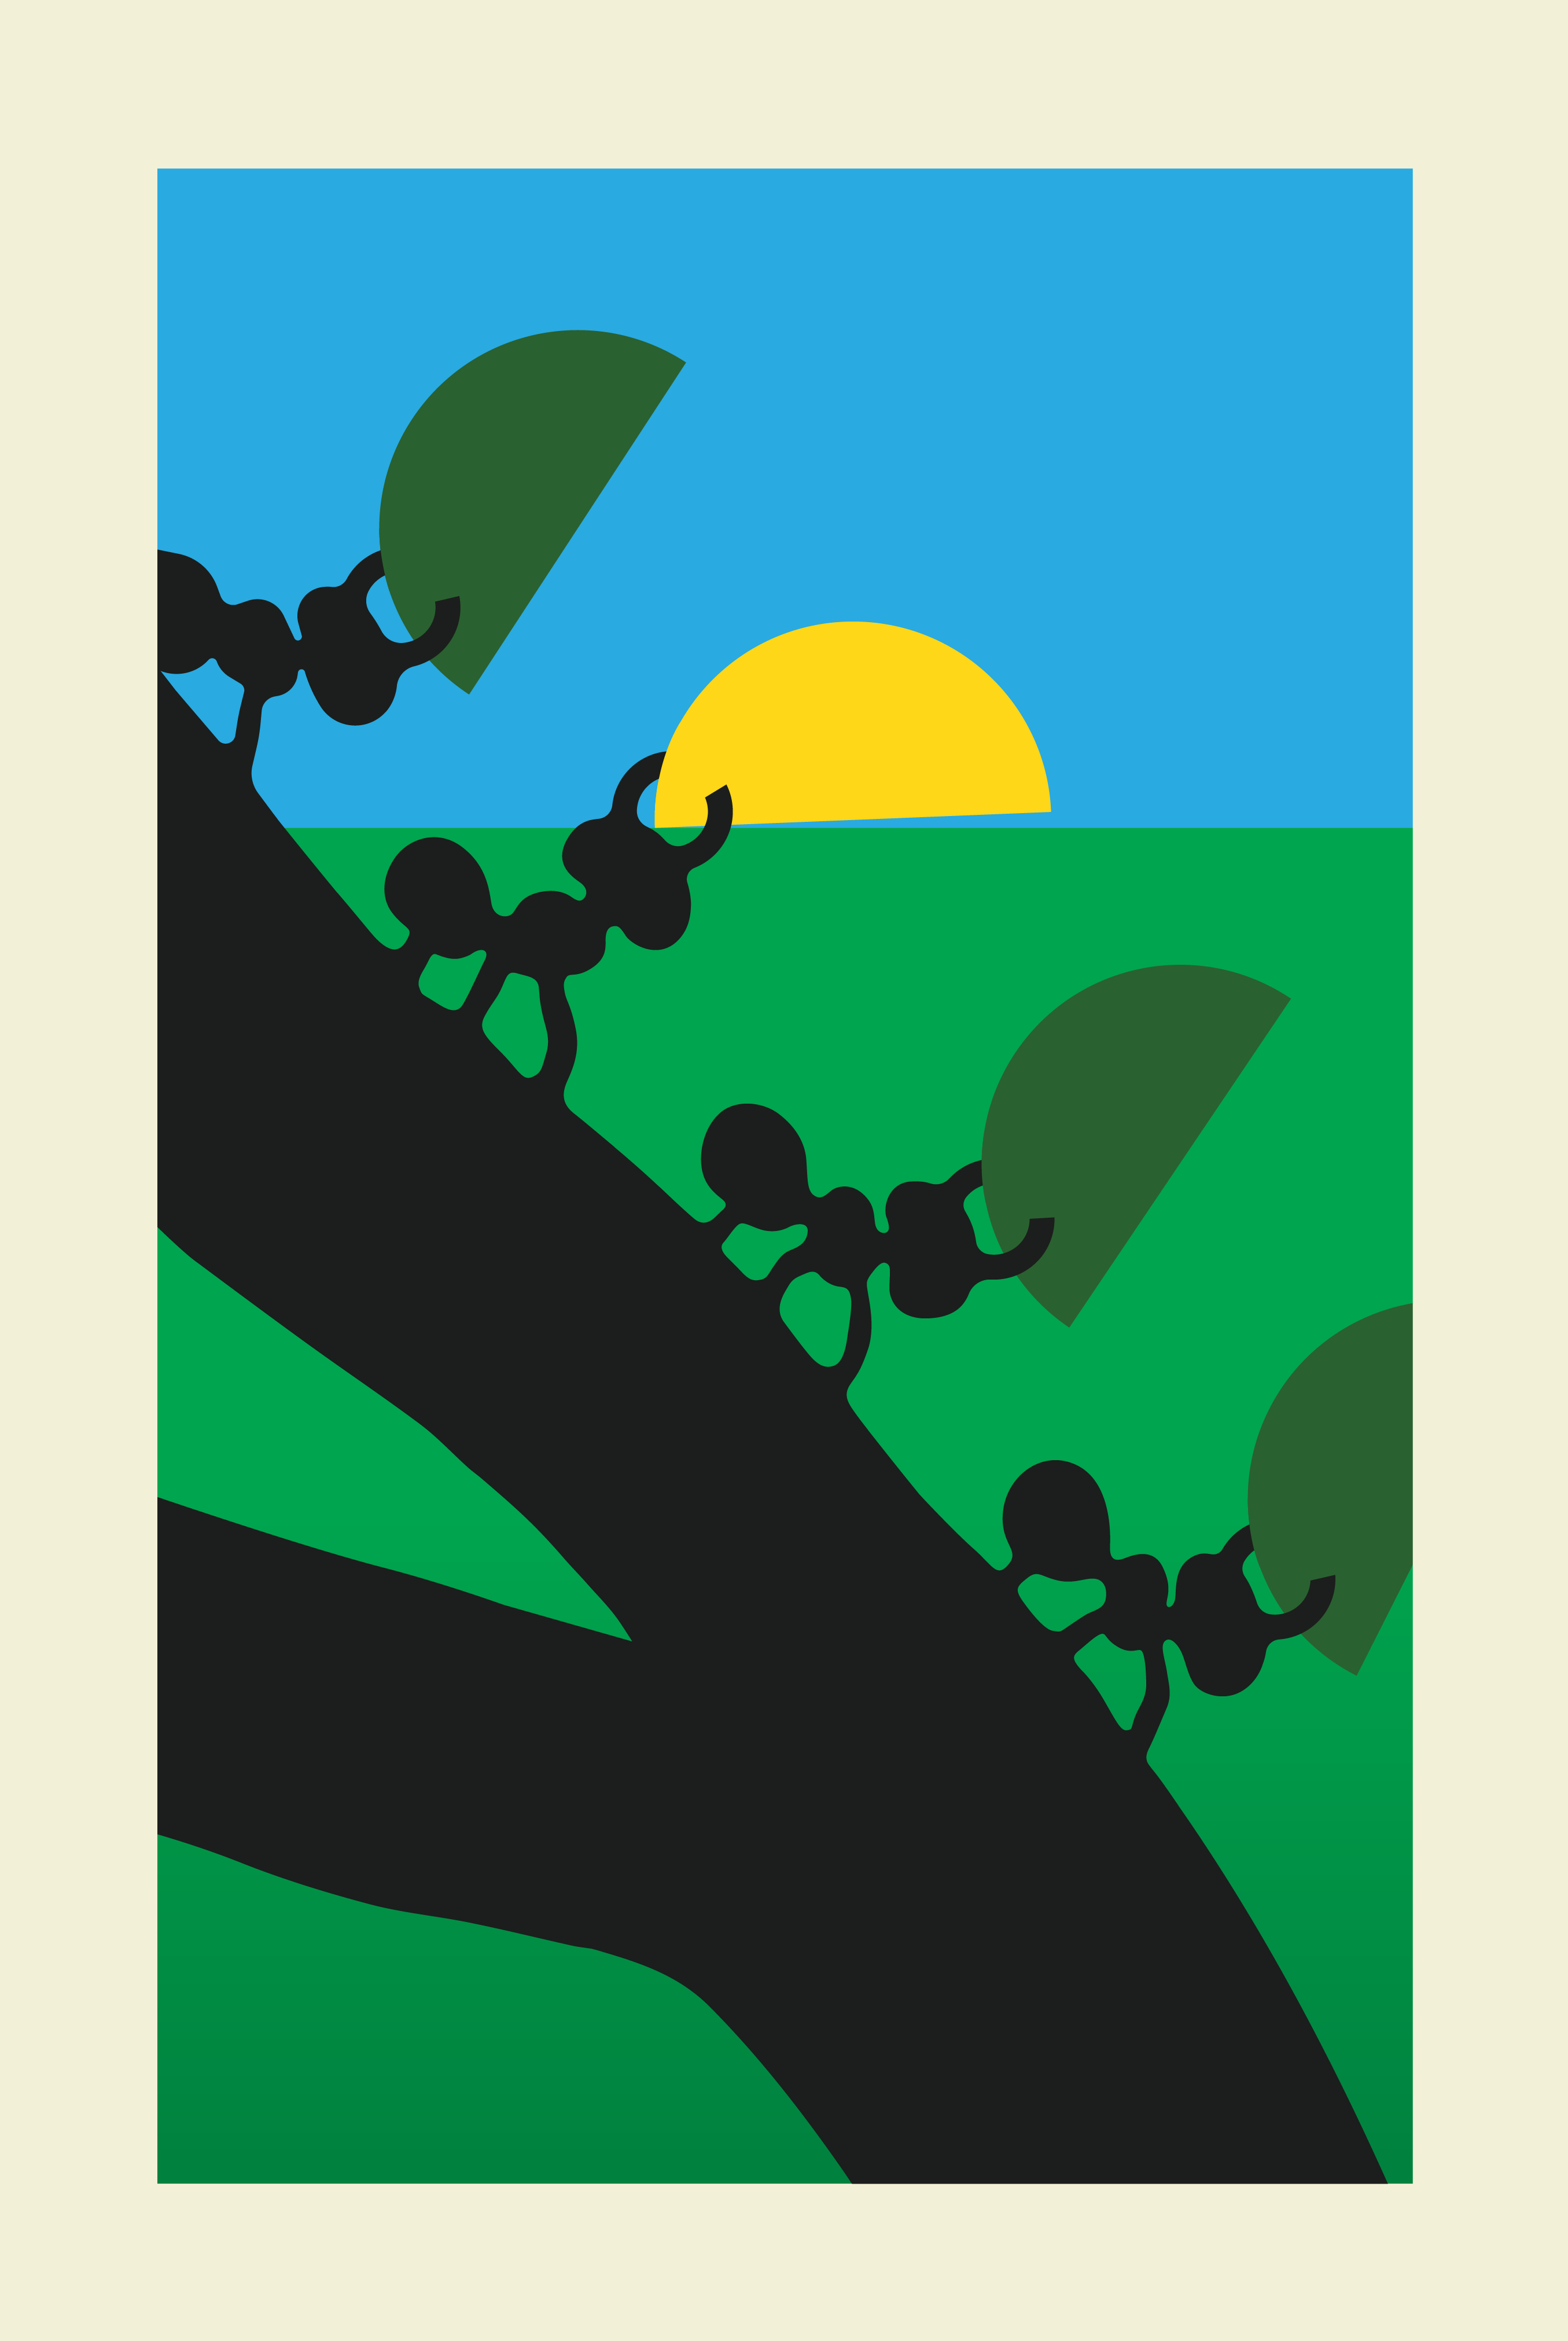 Nature notes #2. Personal work